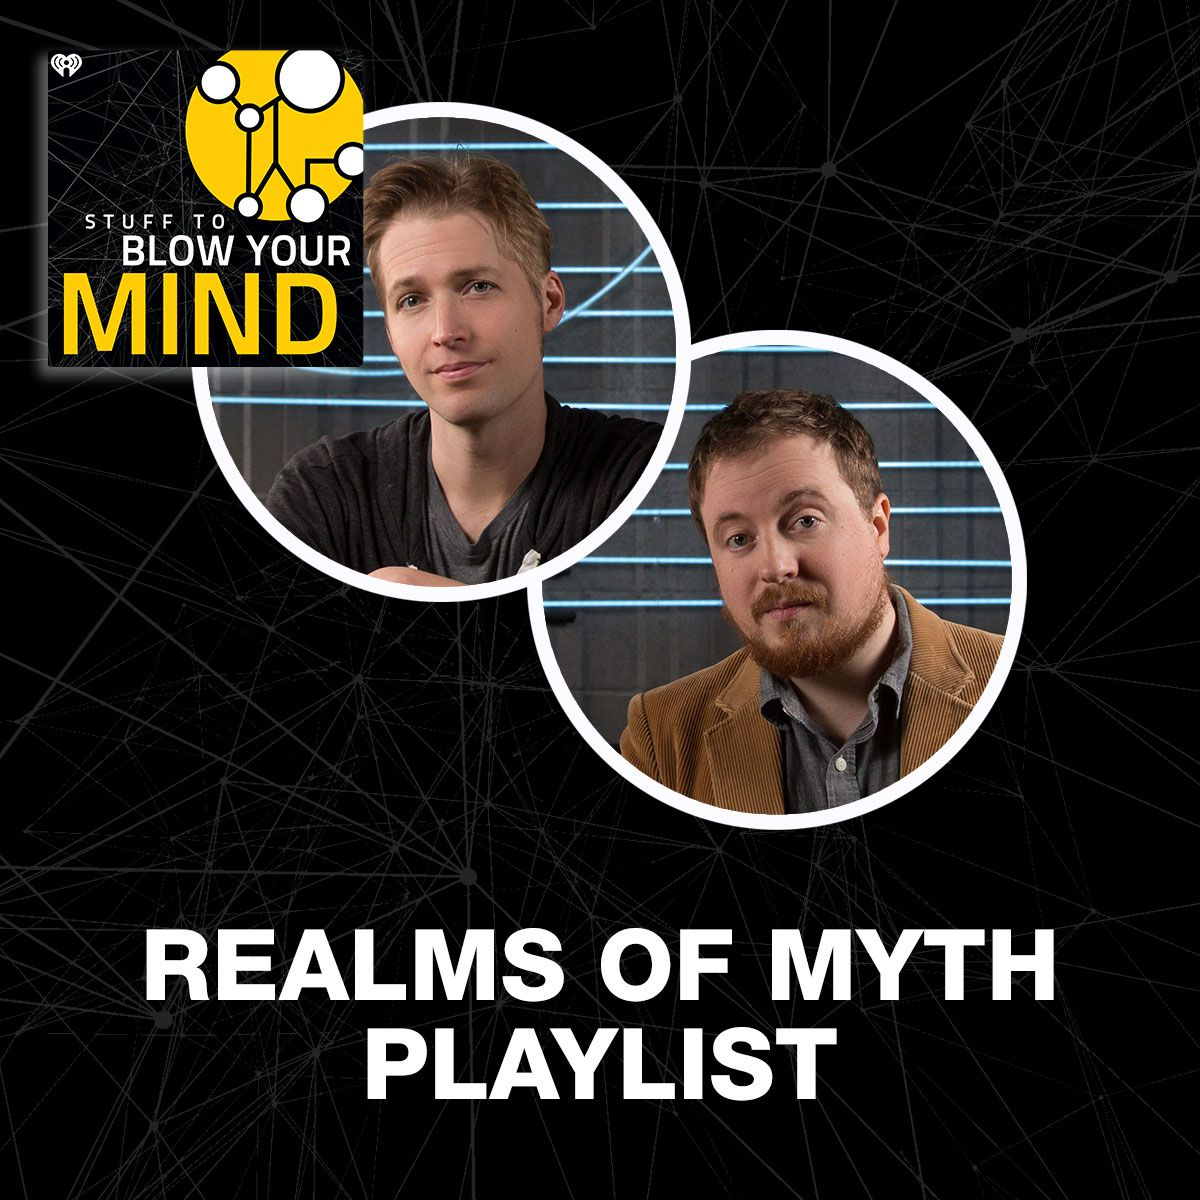 Realms of Myth Playlist, Part 1: Unraveling the Mythic